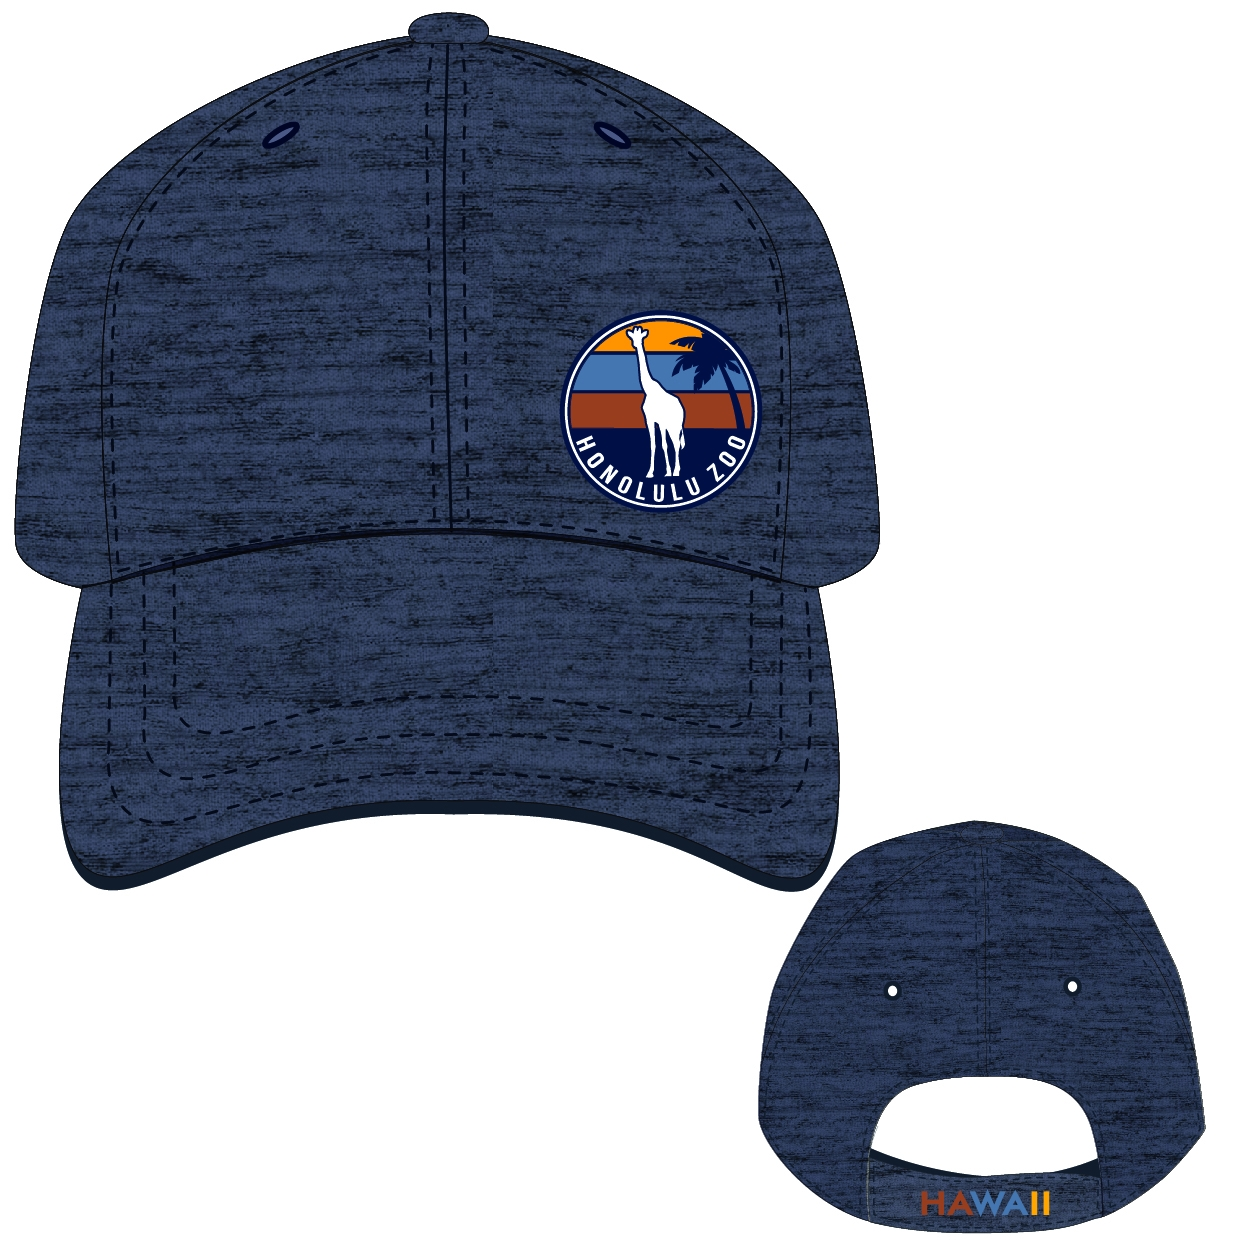 ADULT BASEBALL HAT RANDALL-NAVY